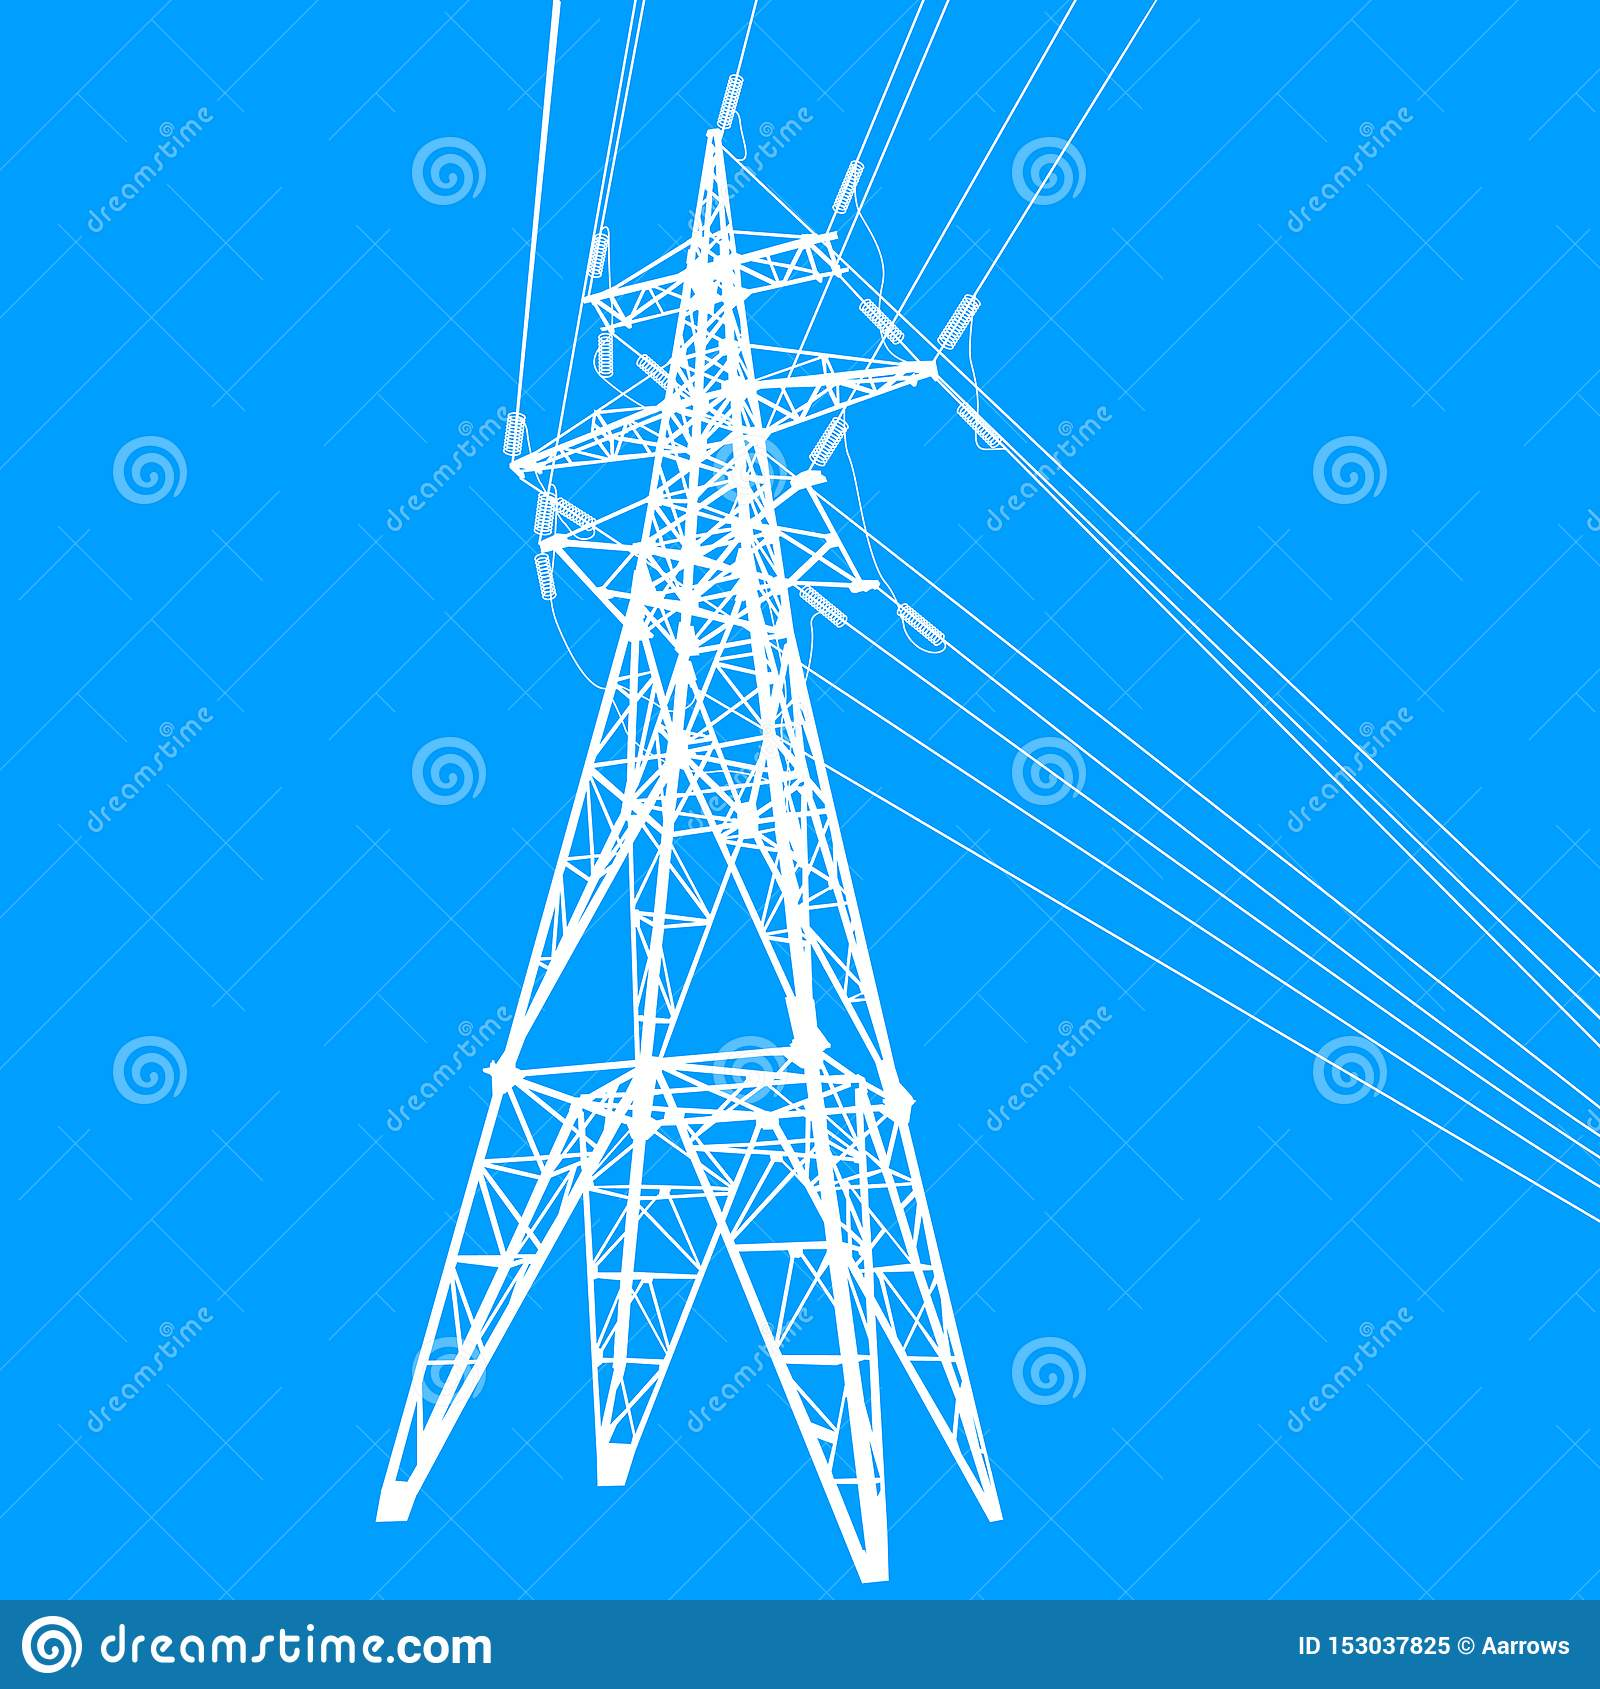 Silhouette of high voltage power lines on blue background illustration